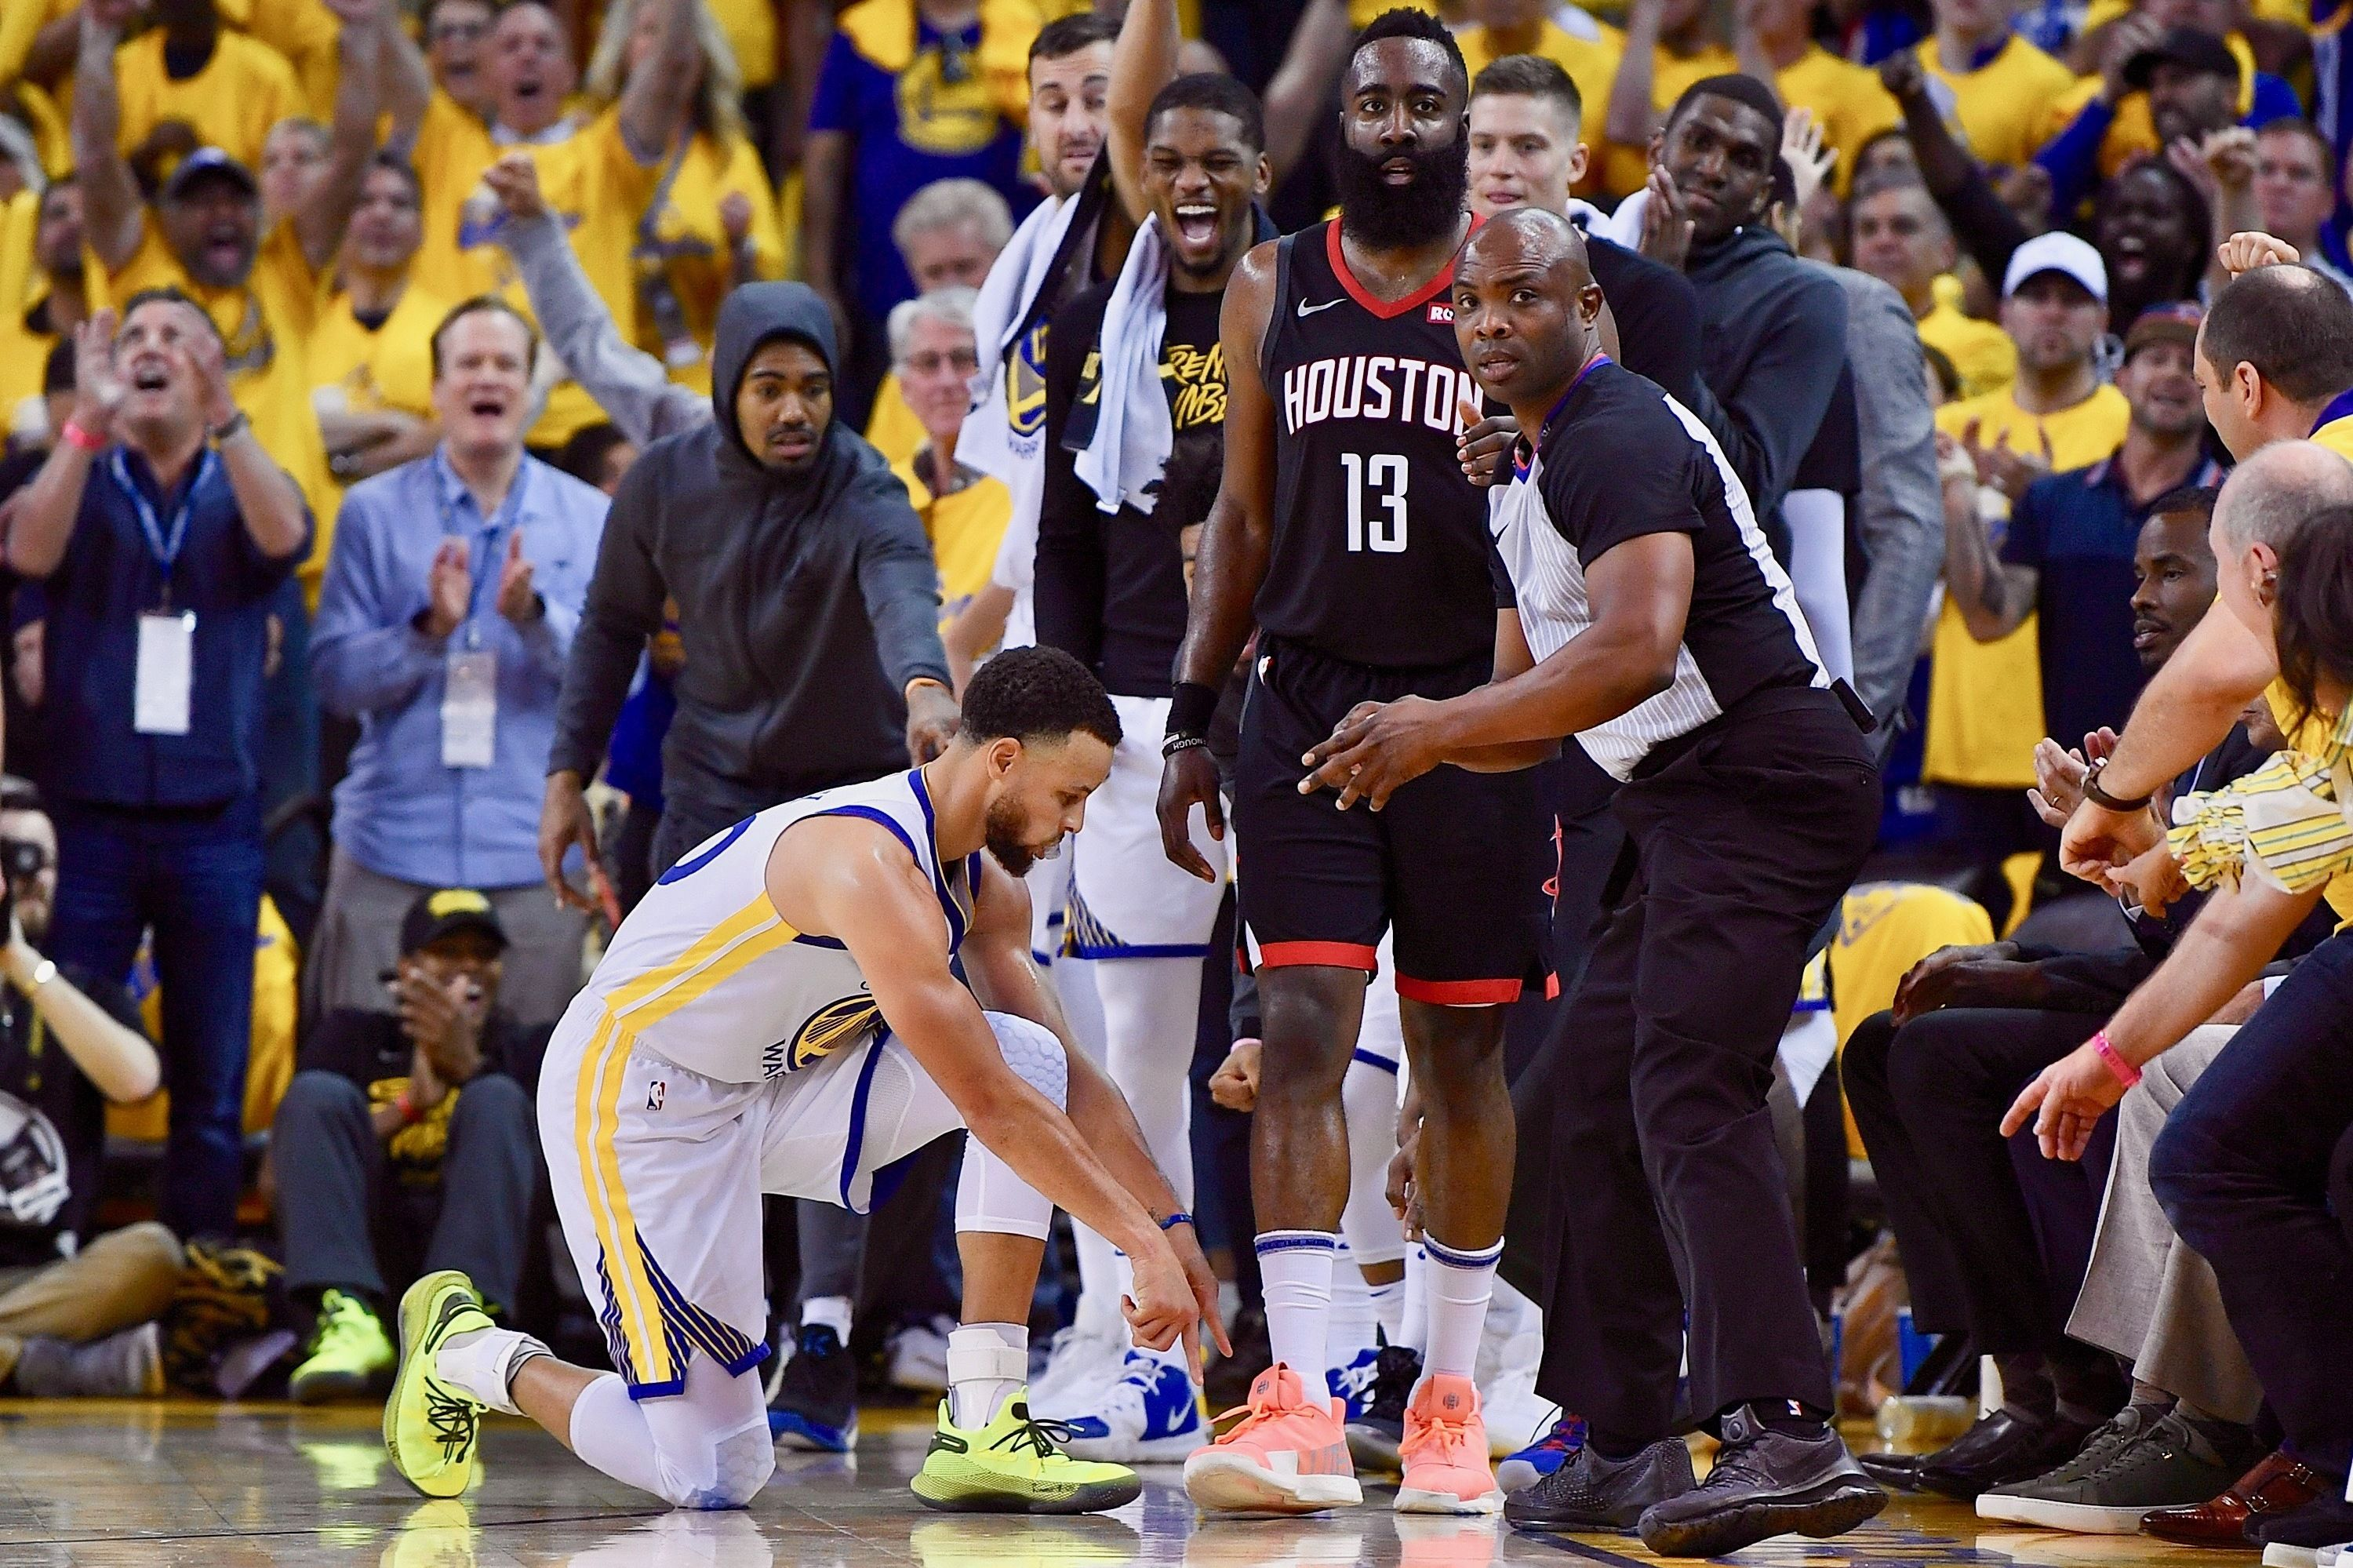 Steph Trolling Harden 😂 Bleacher Report (With images